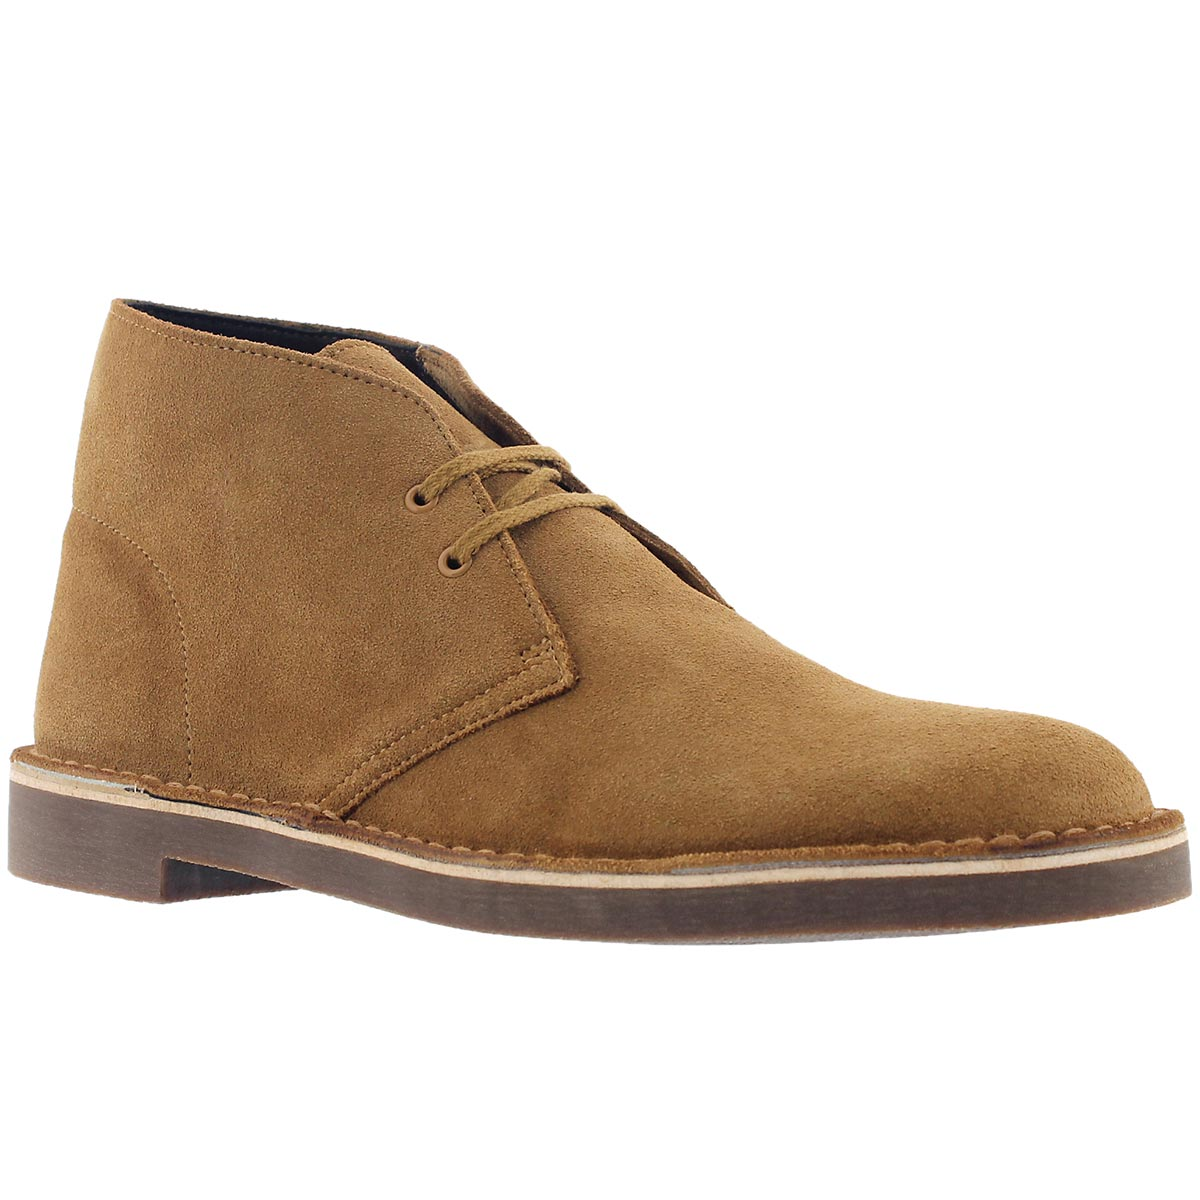 Mns Bushacre 2 wheat suede chukka boot